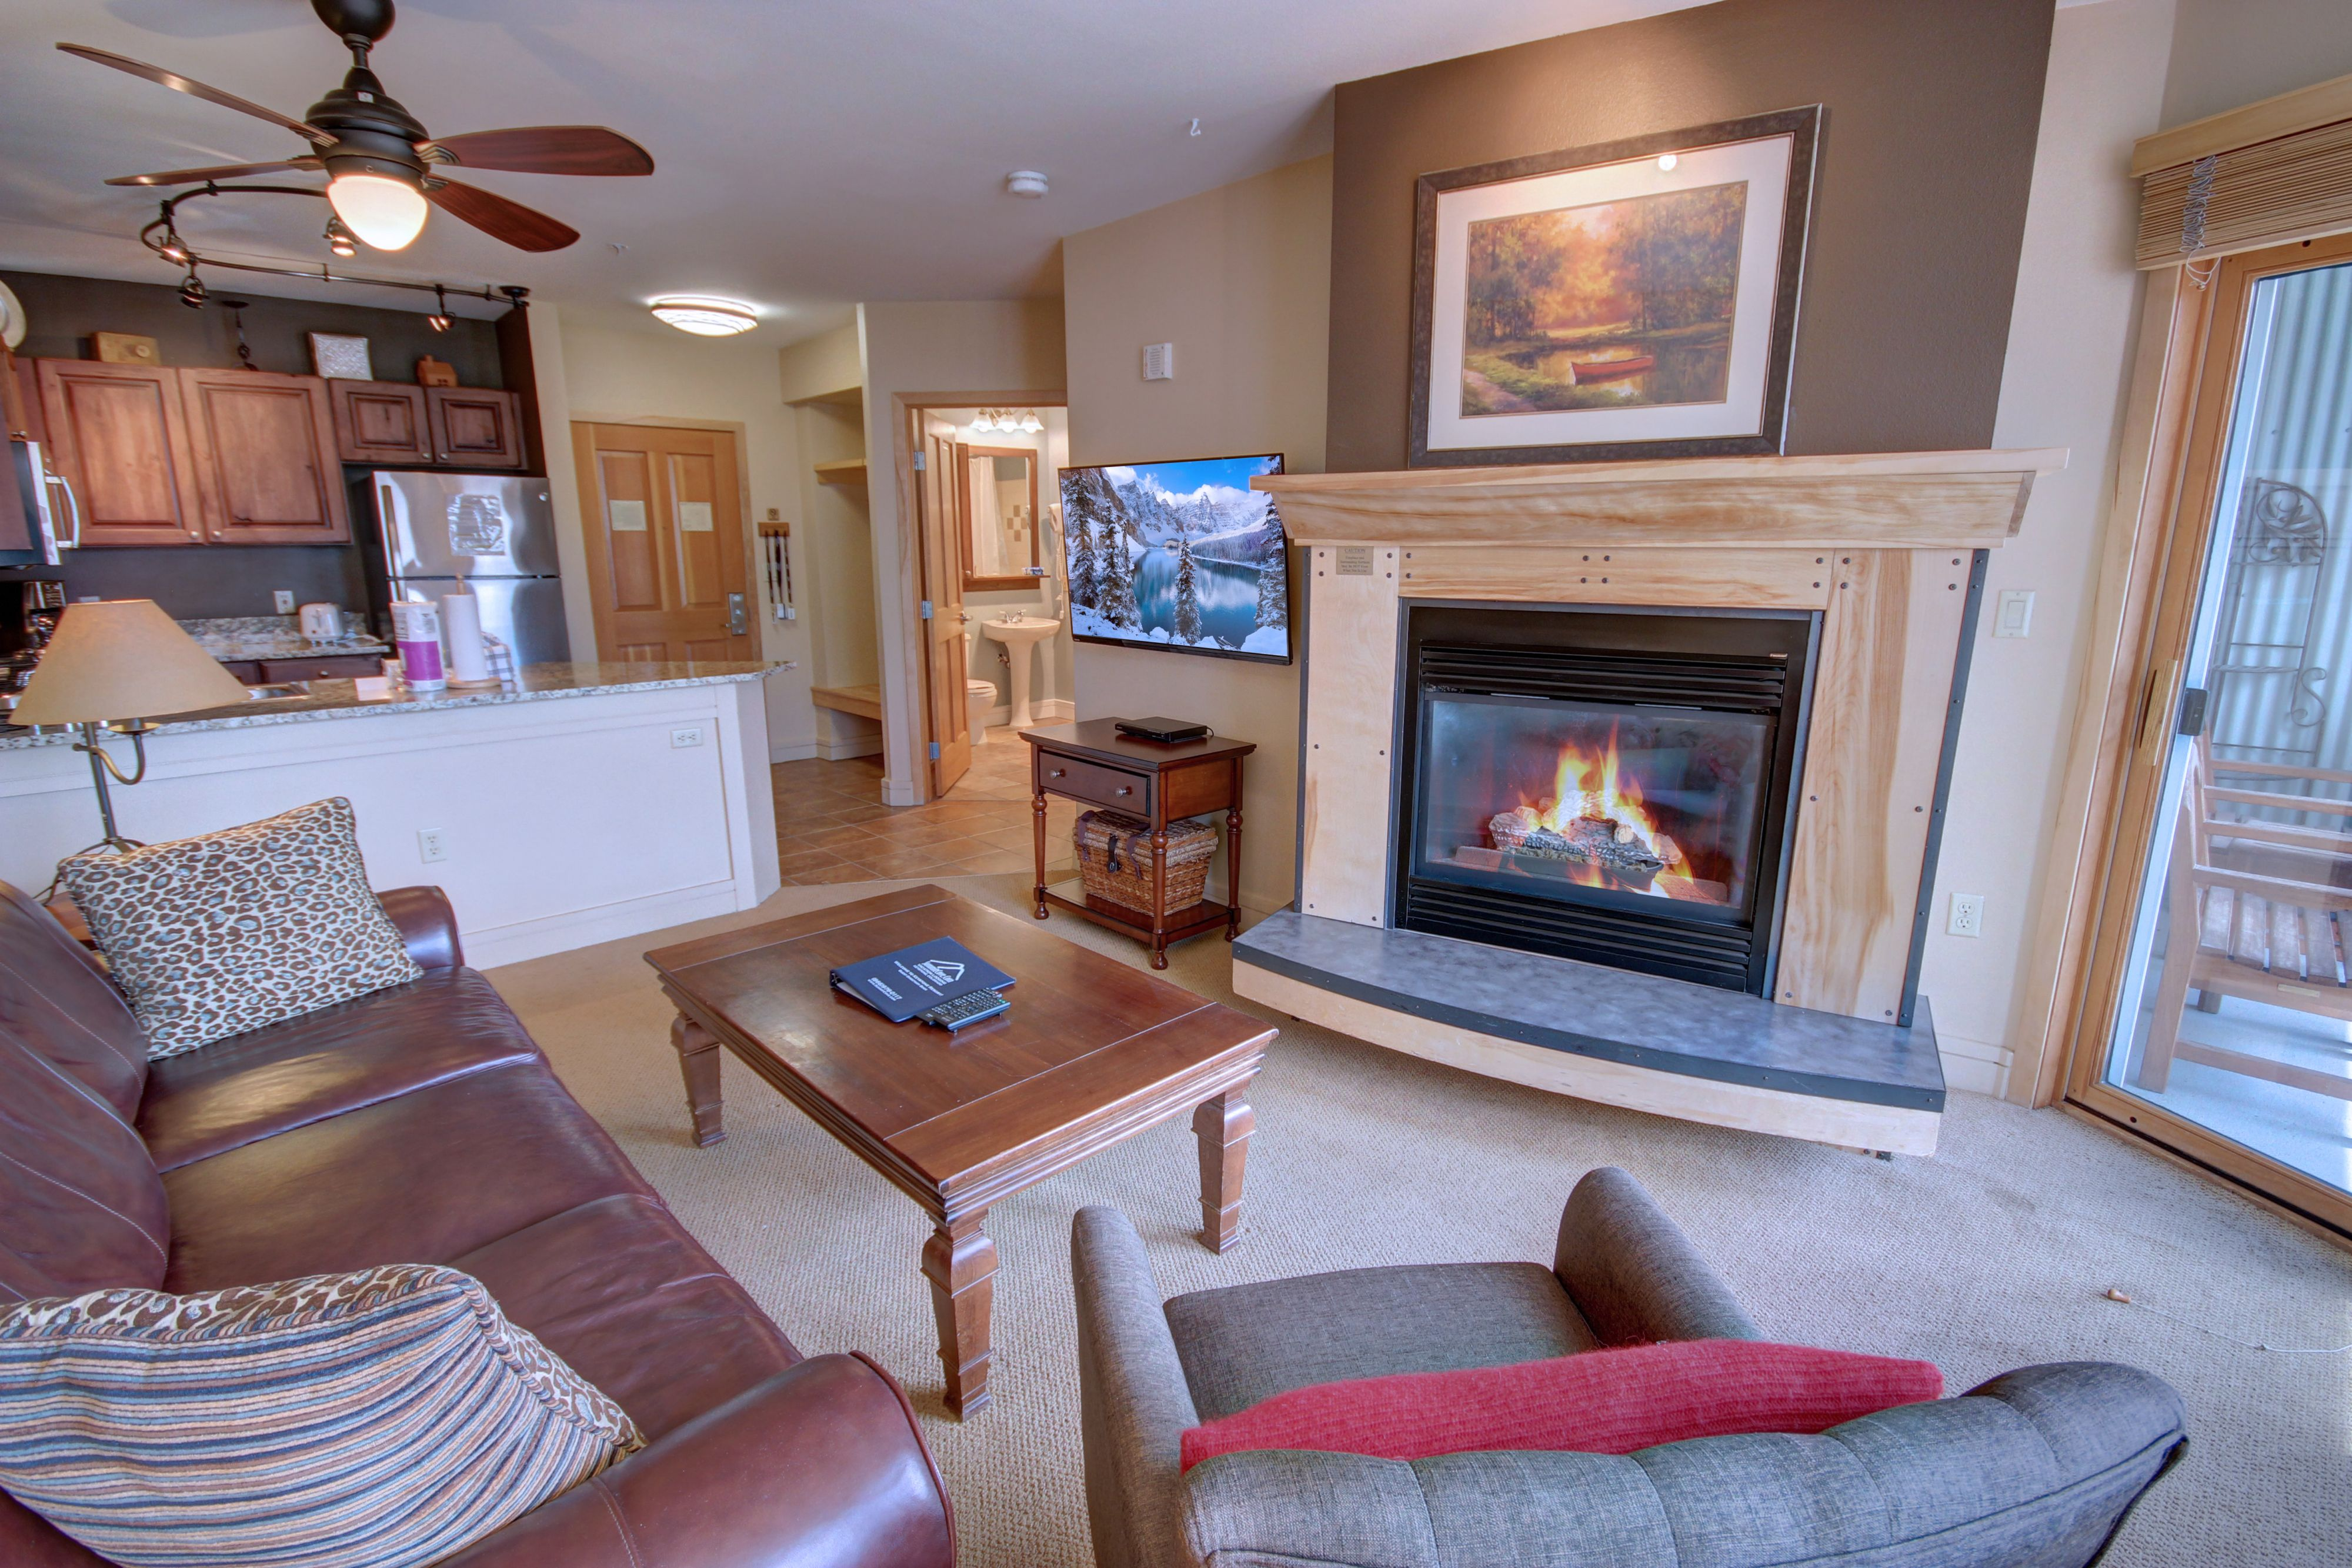 Living room with comfortable couch and fire